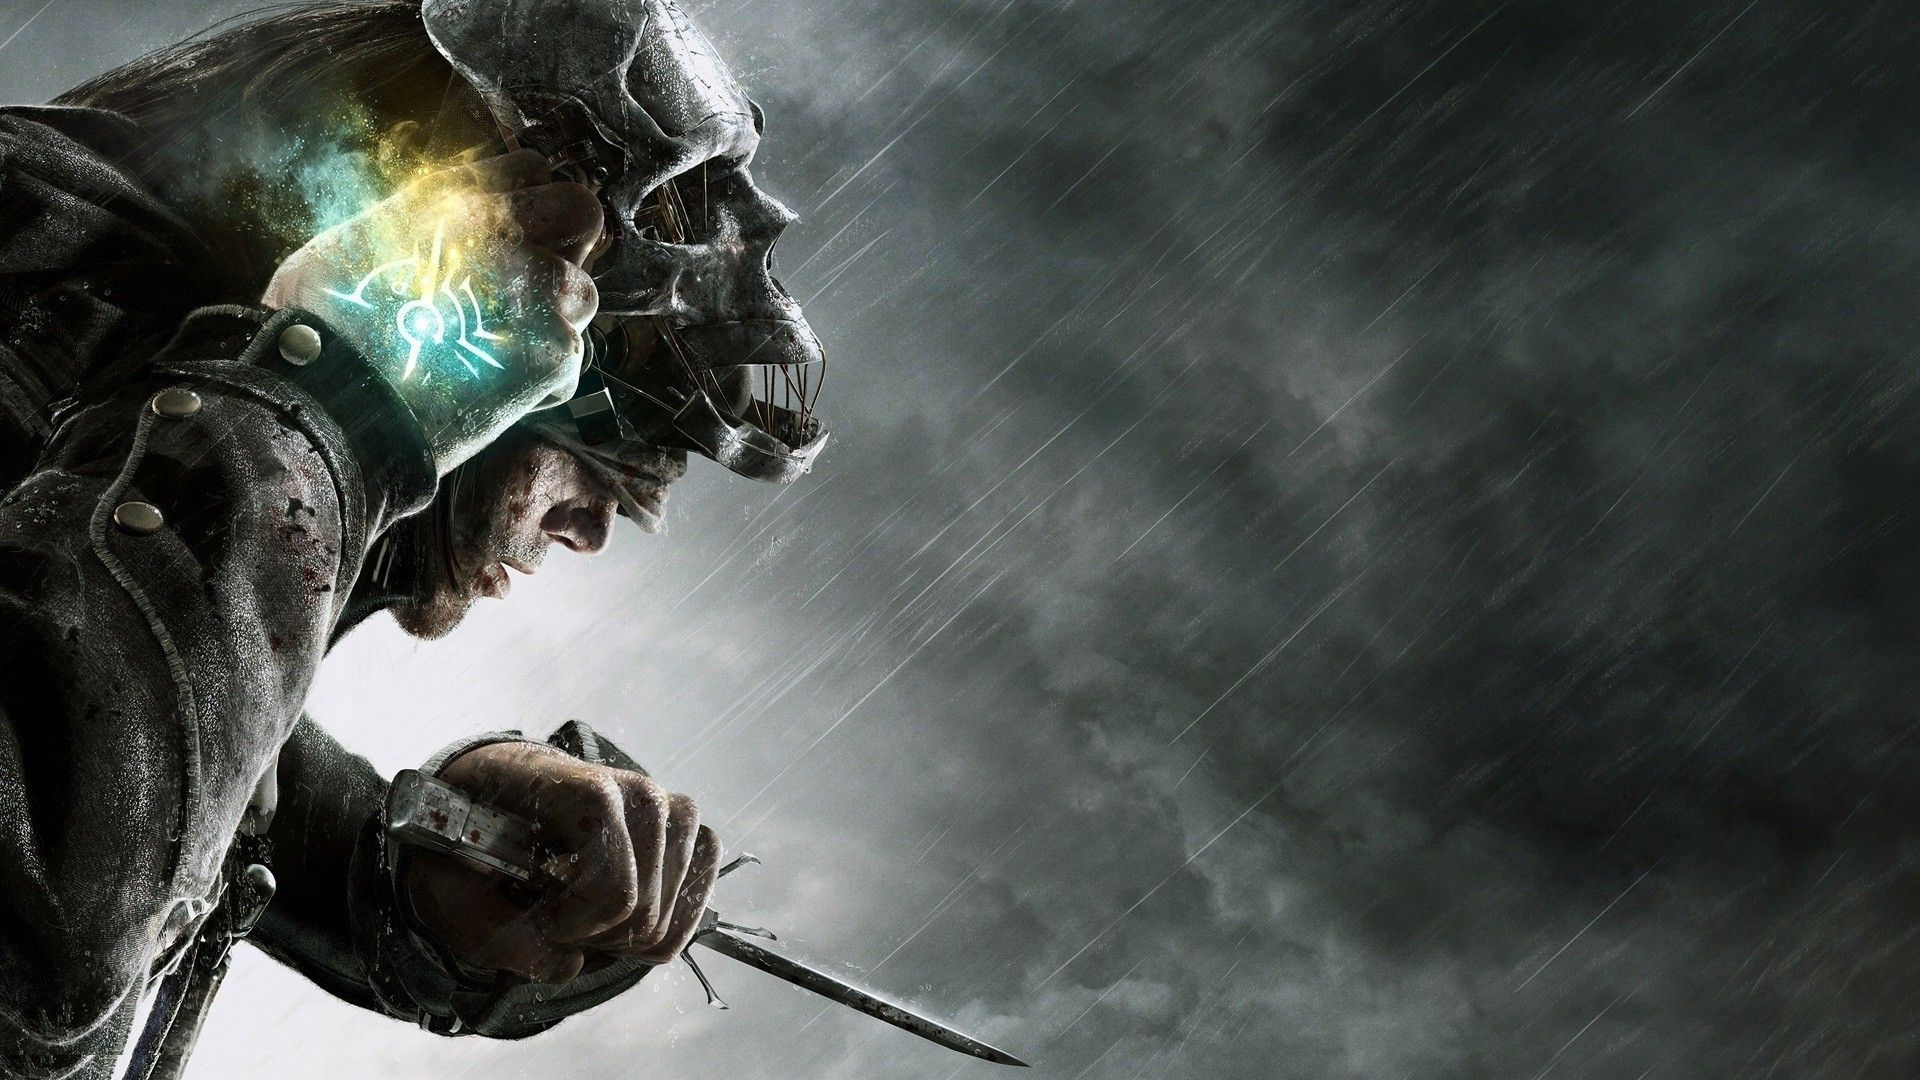 Dishonored Hd Wallpapers Backgrounds Wallpaper Page 1920 1080 Dishonored 2 Wallpapers 32 Wallpapers Ad Dishonored Witch Wallpaper Live Wallpaper For Pc